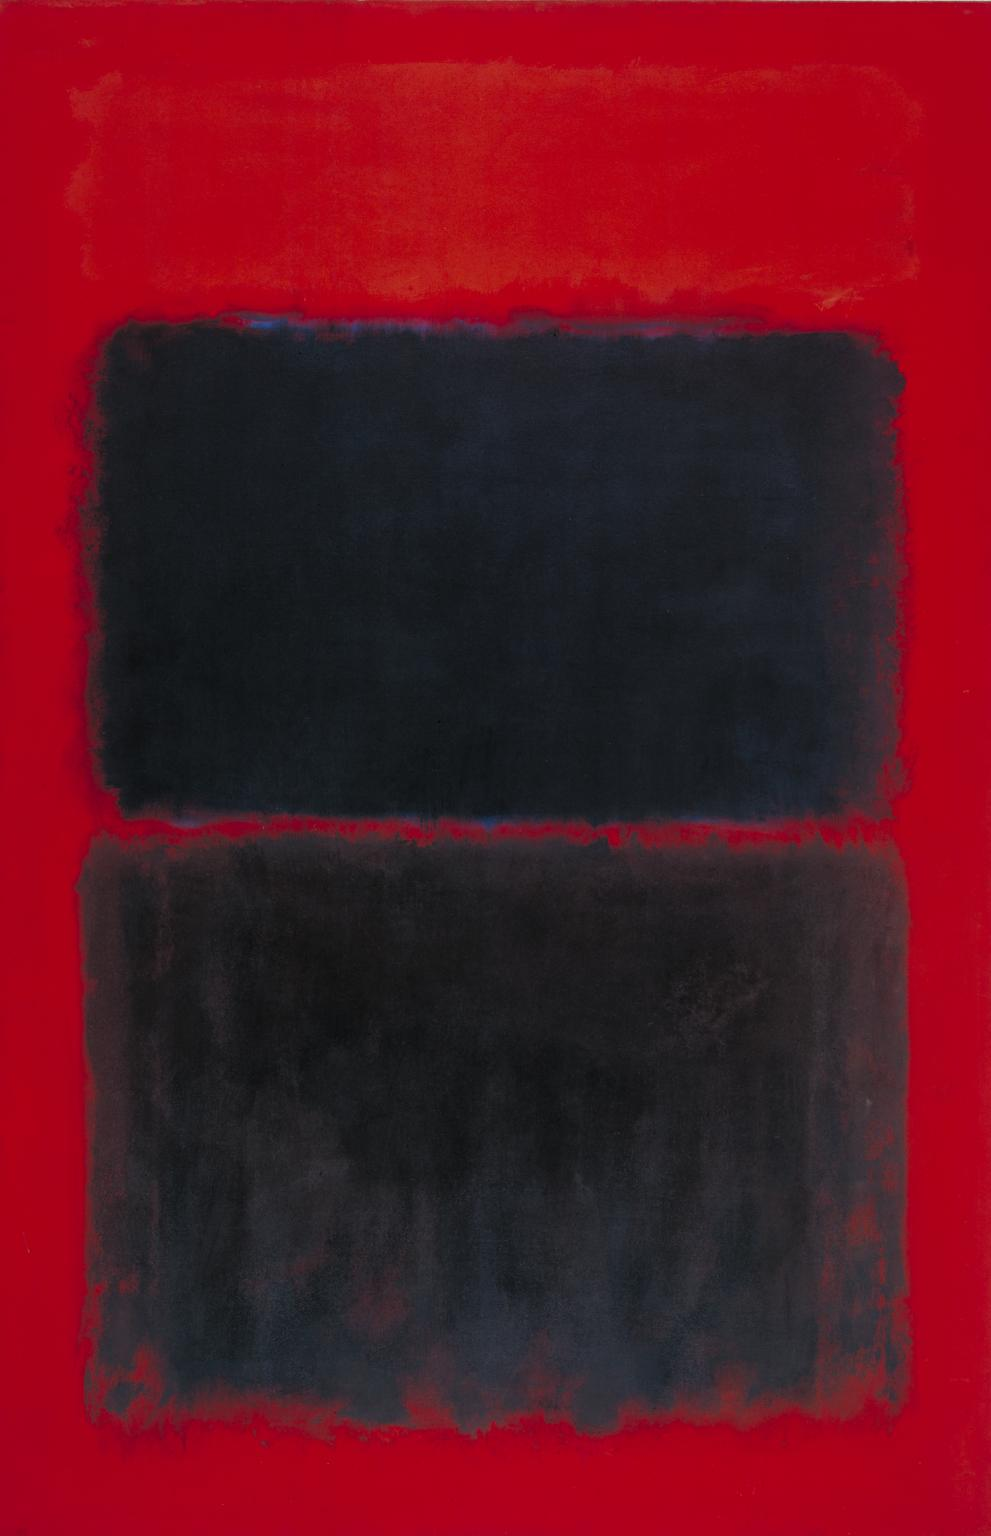 Rothko, Light Red over Black (1957)